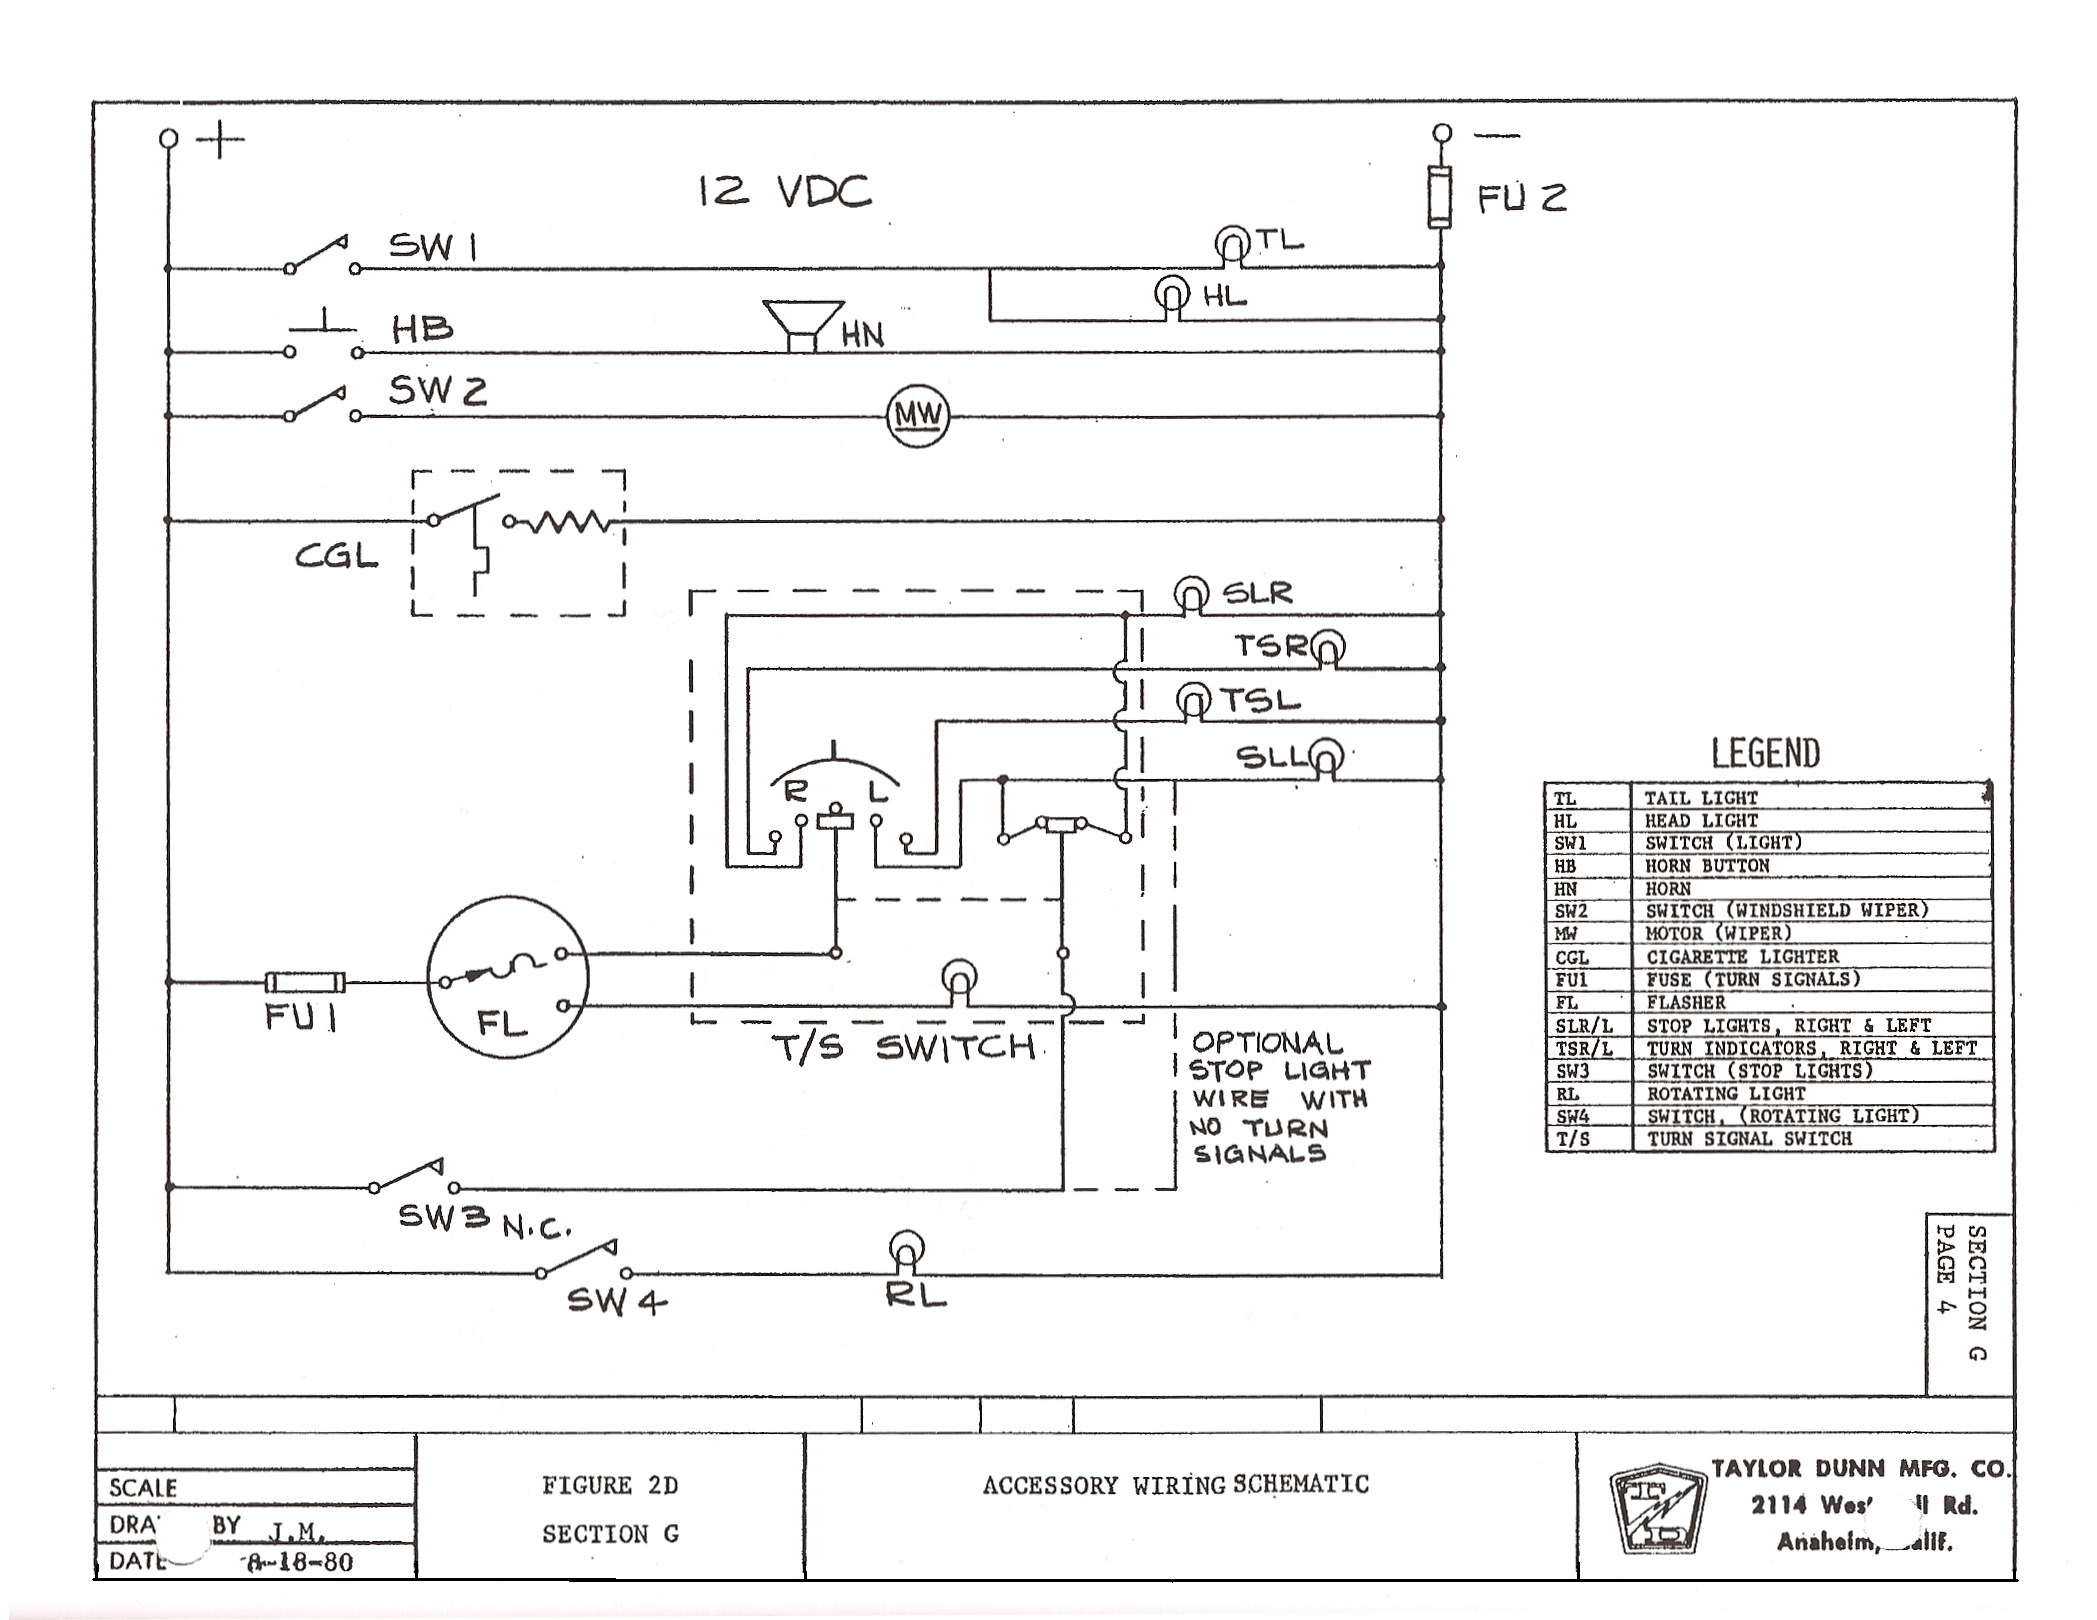 2002 Club Car Wiring Diagram 48 Volt Will Be A Thing Golf Cart 36 Ignition Get Free Image 2004 36v